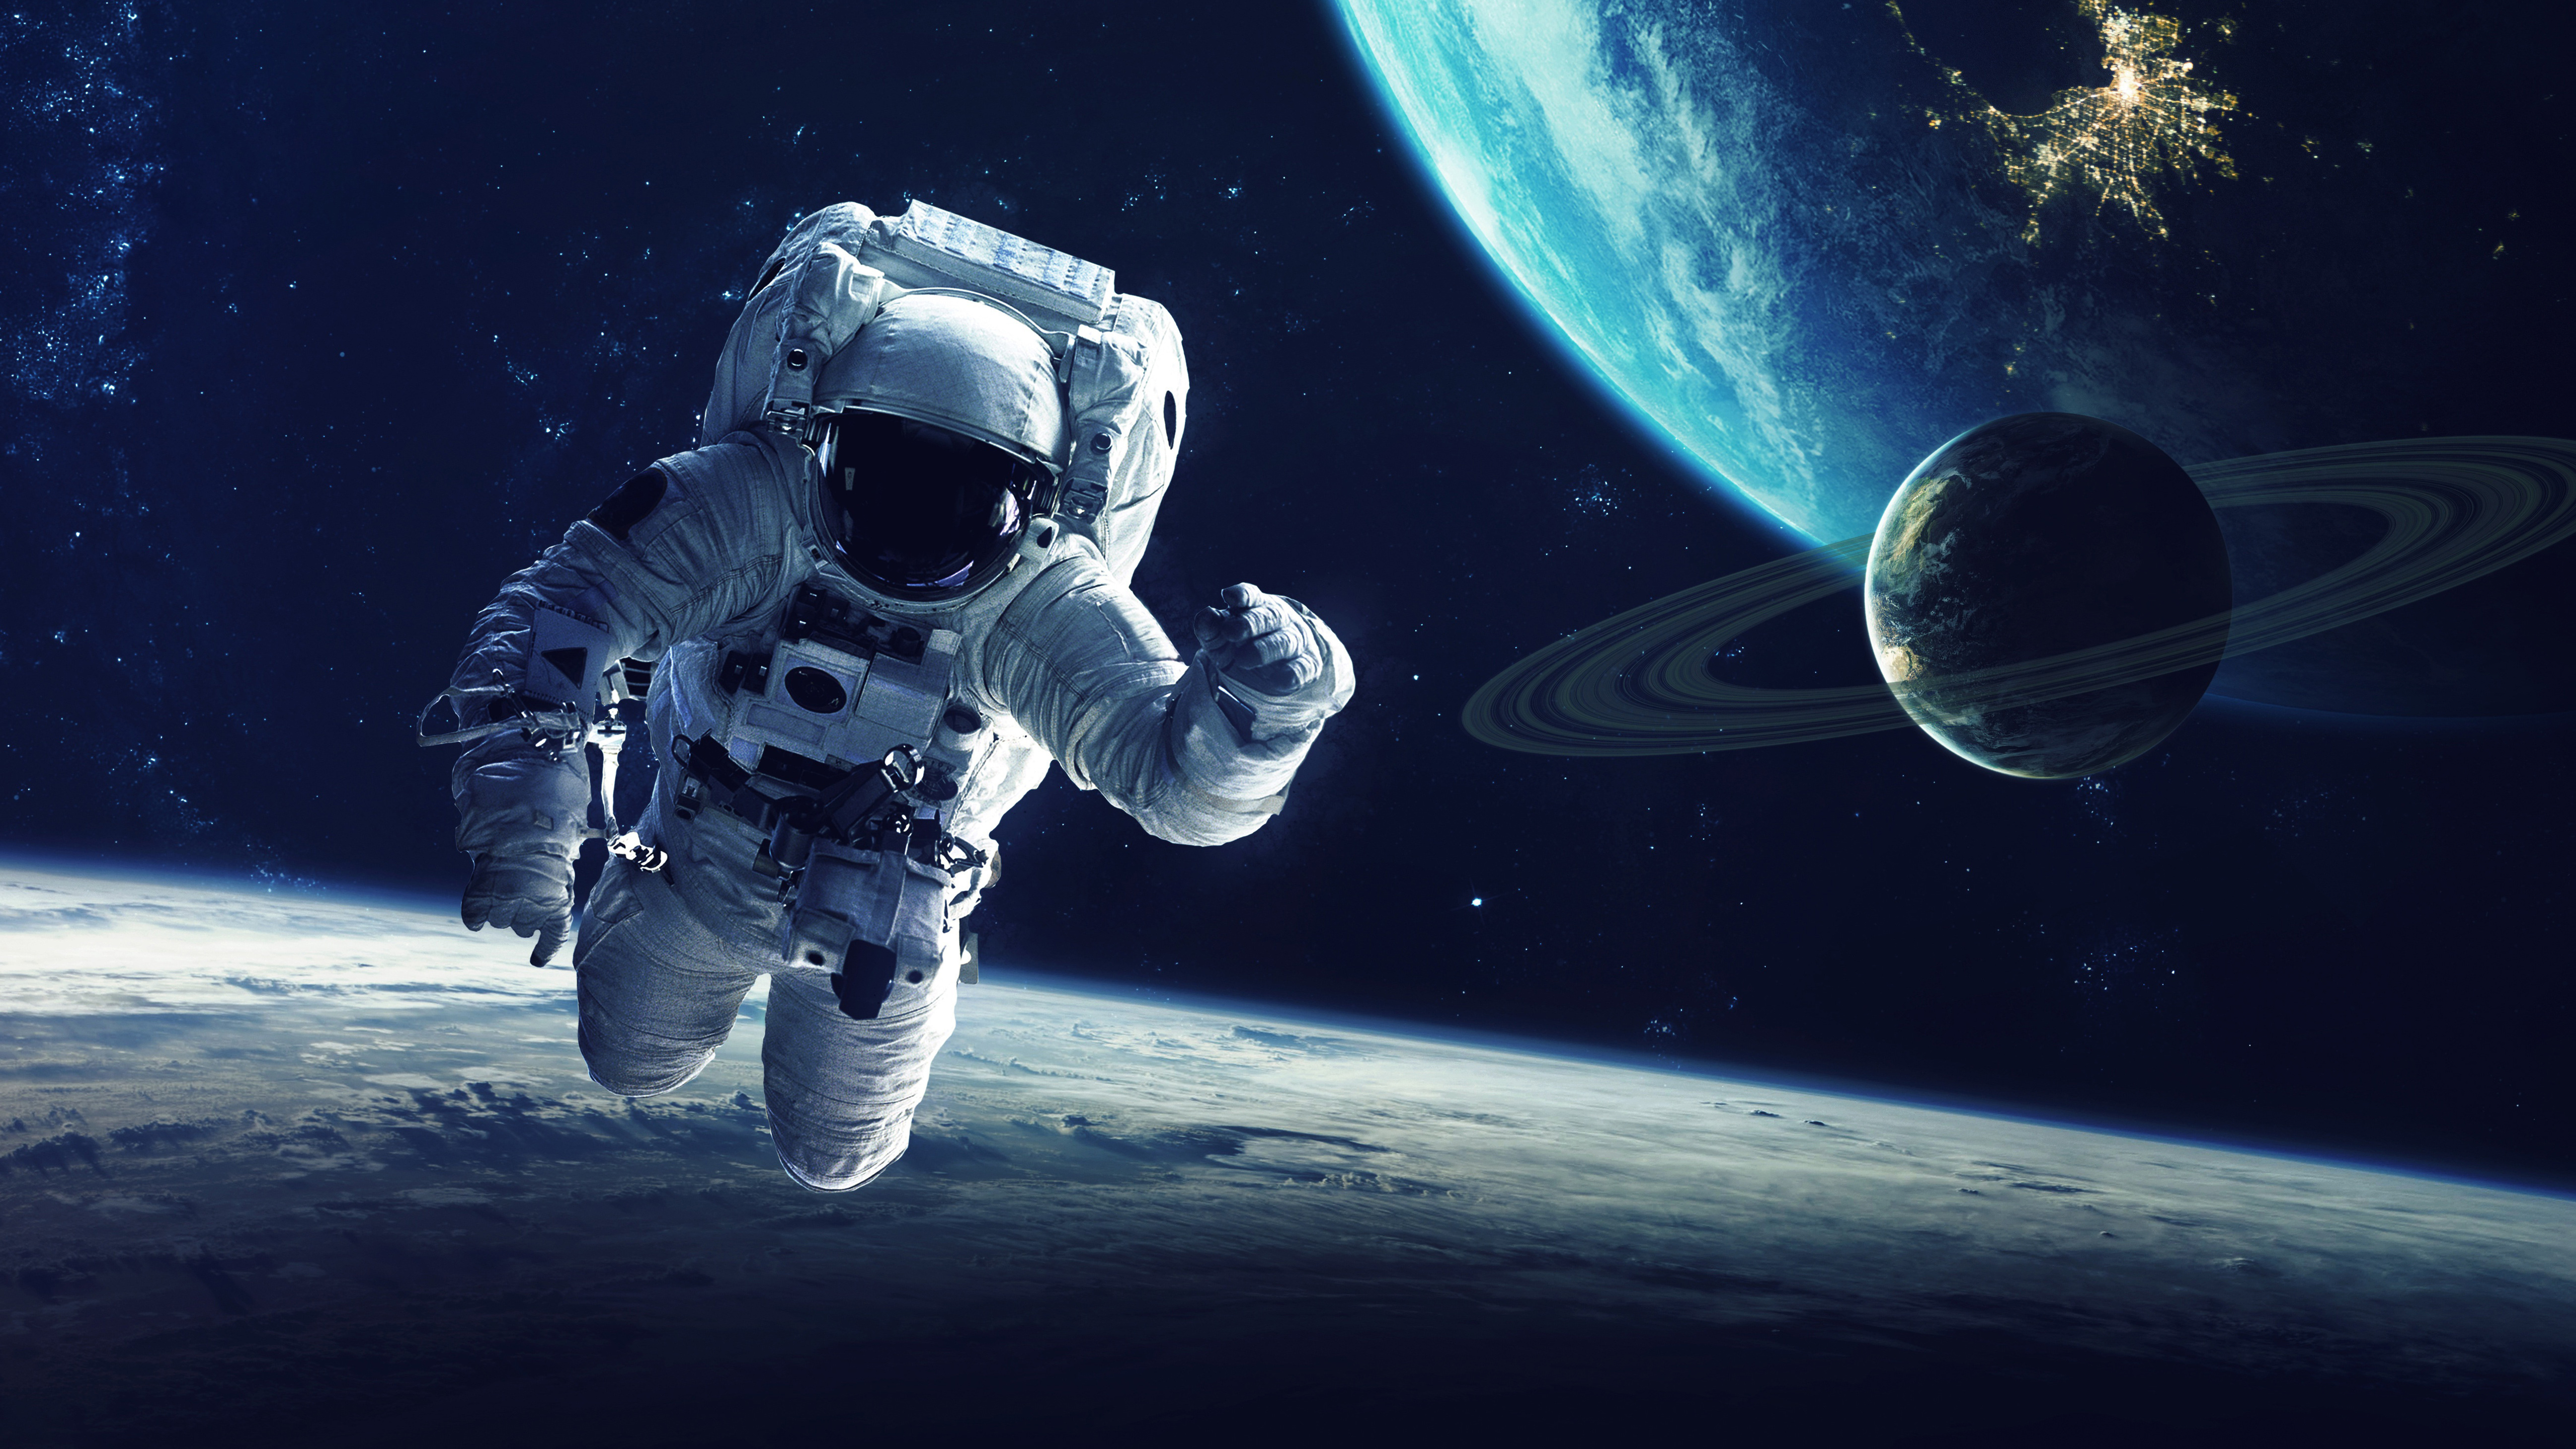 astronaut in space hd - photo #20